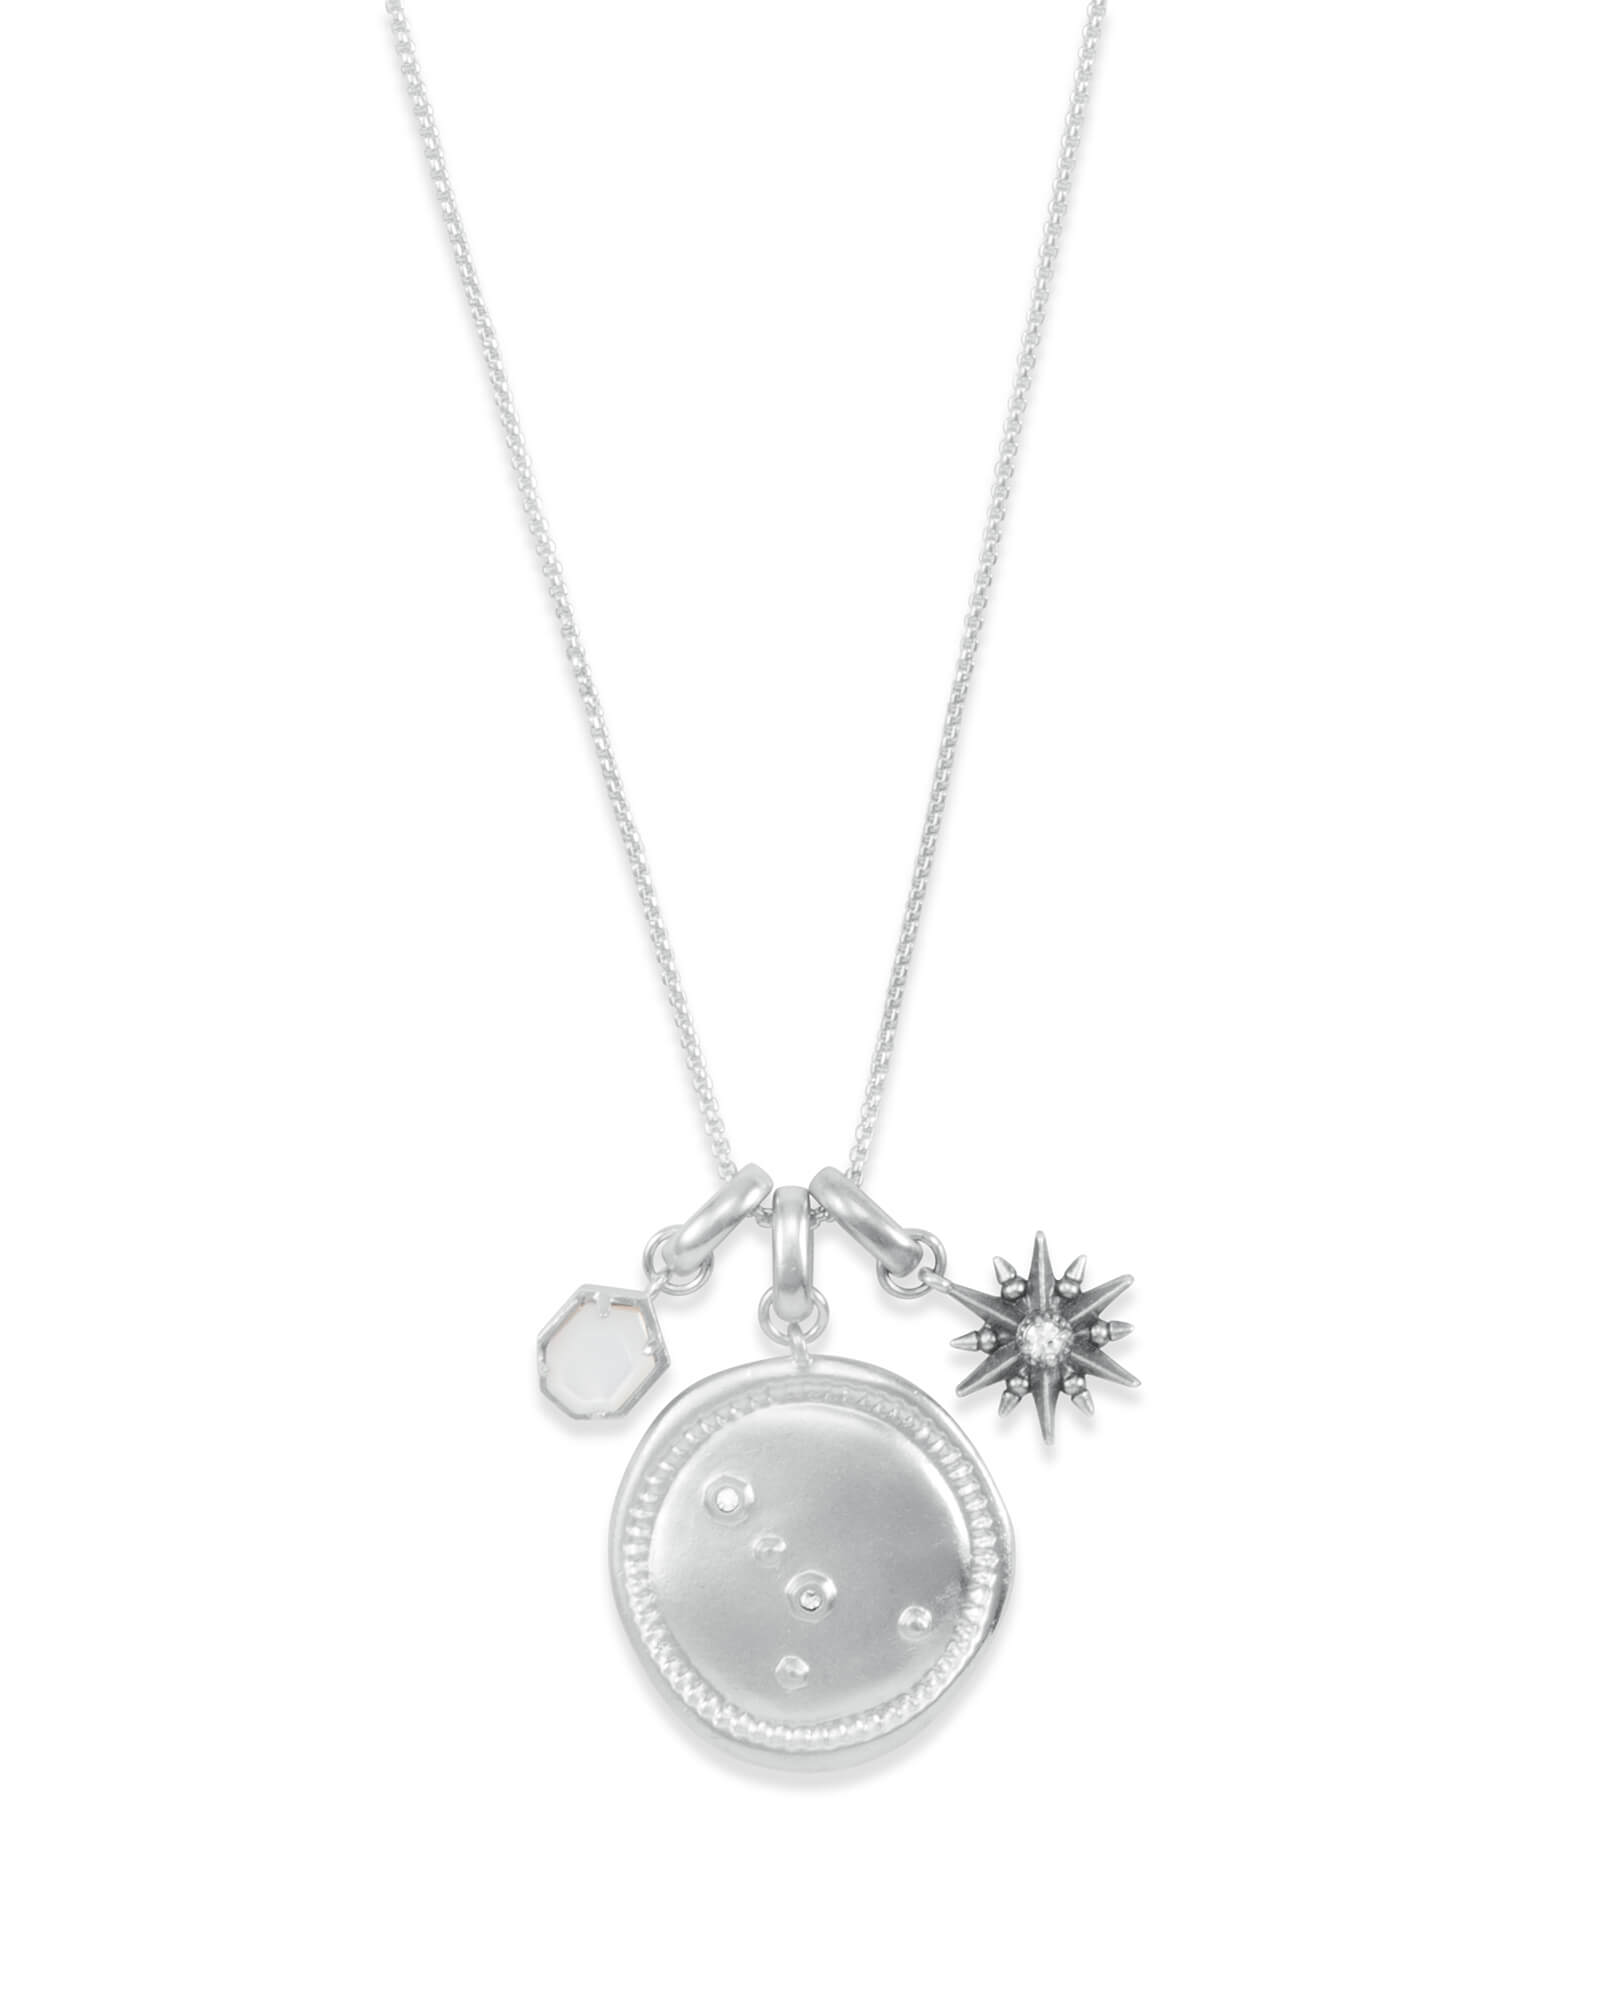 June Cancer Charm Necklace Set in Silver